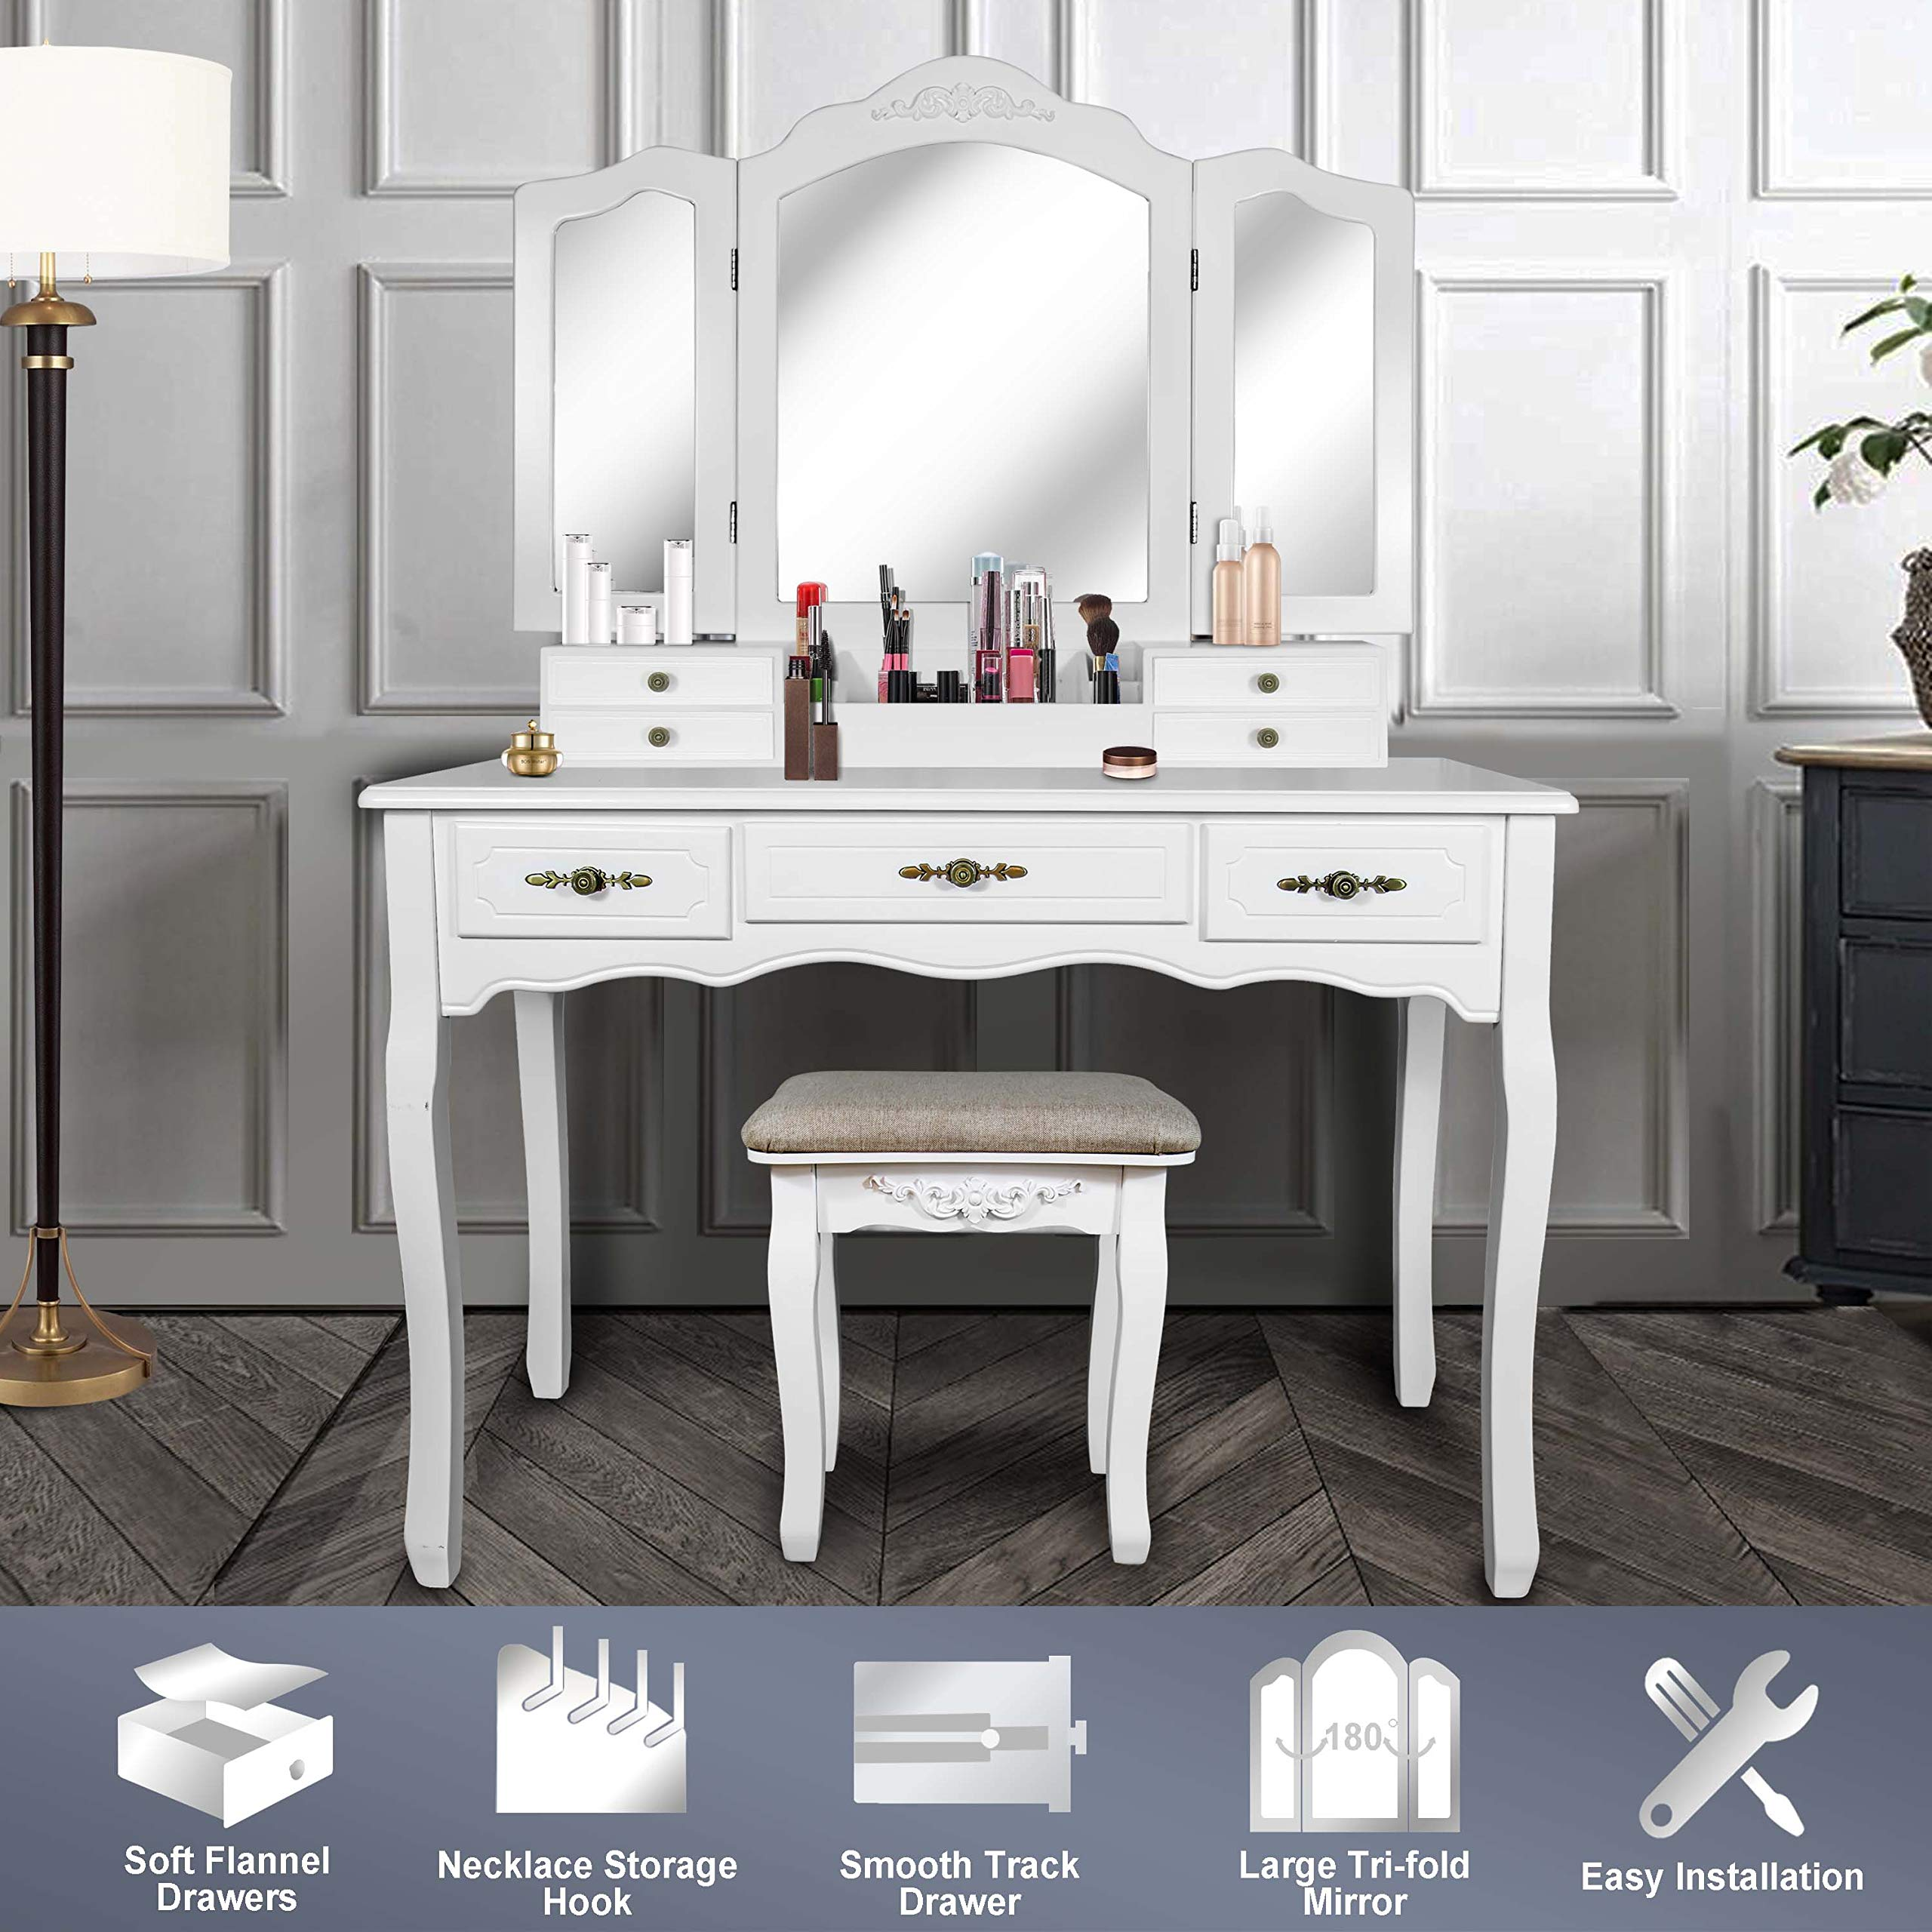 Vanity Beauty Station,Large Tri-Folding Necklace Hooked Mirrors,6 Organization 7 Drawers Makeup Dress Table with Cushioned Stool Set - White by ENSTVER